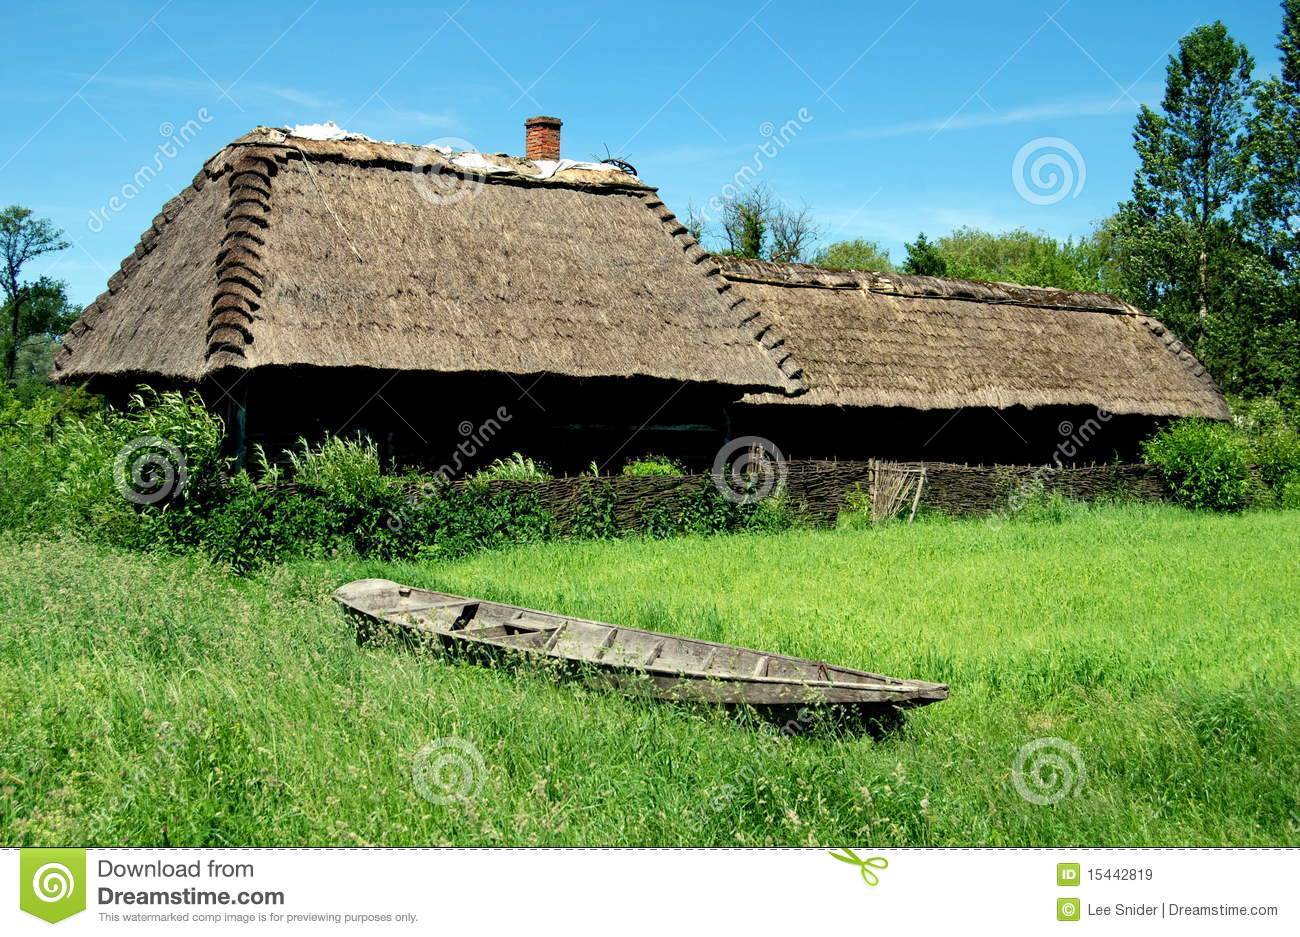 Lublin Poland Farmstead With Thatched Roof Royalty Free Stock Images Image 15442819